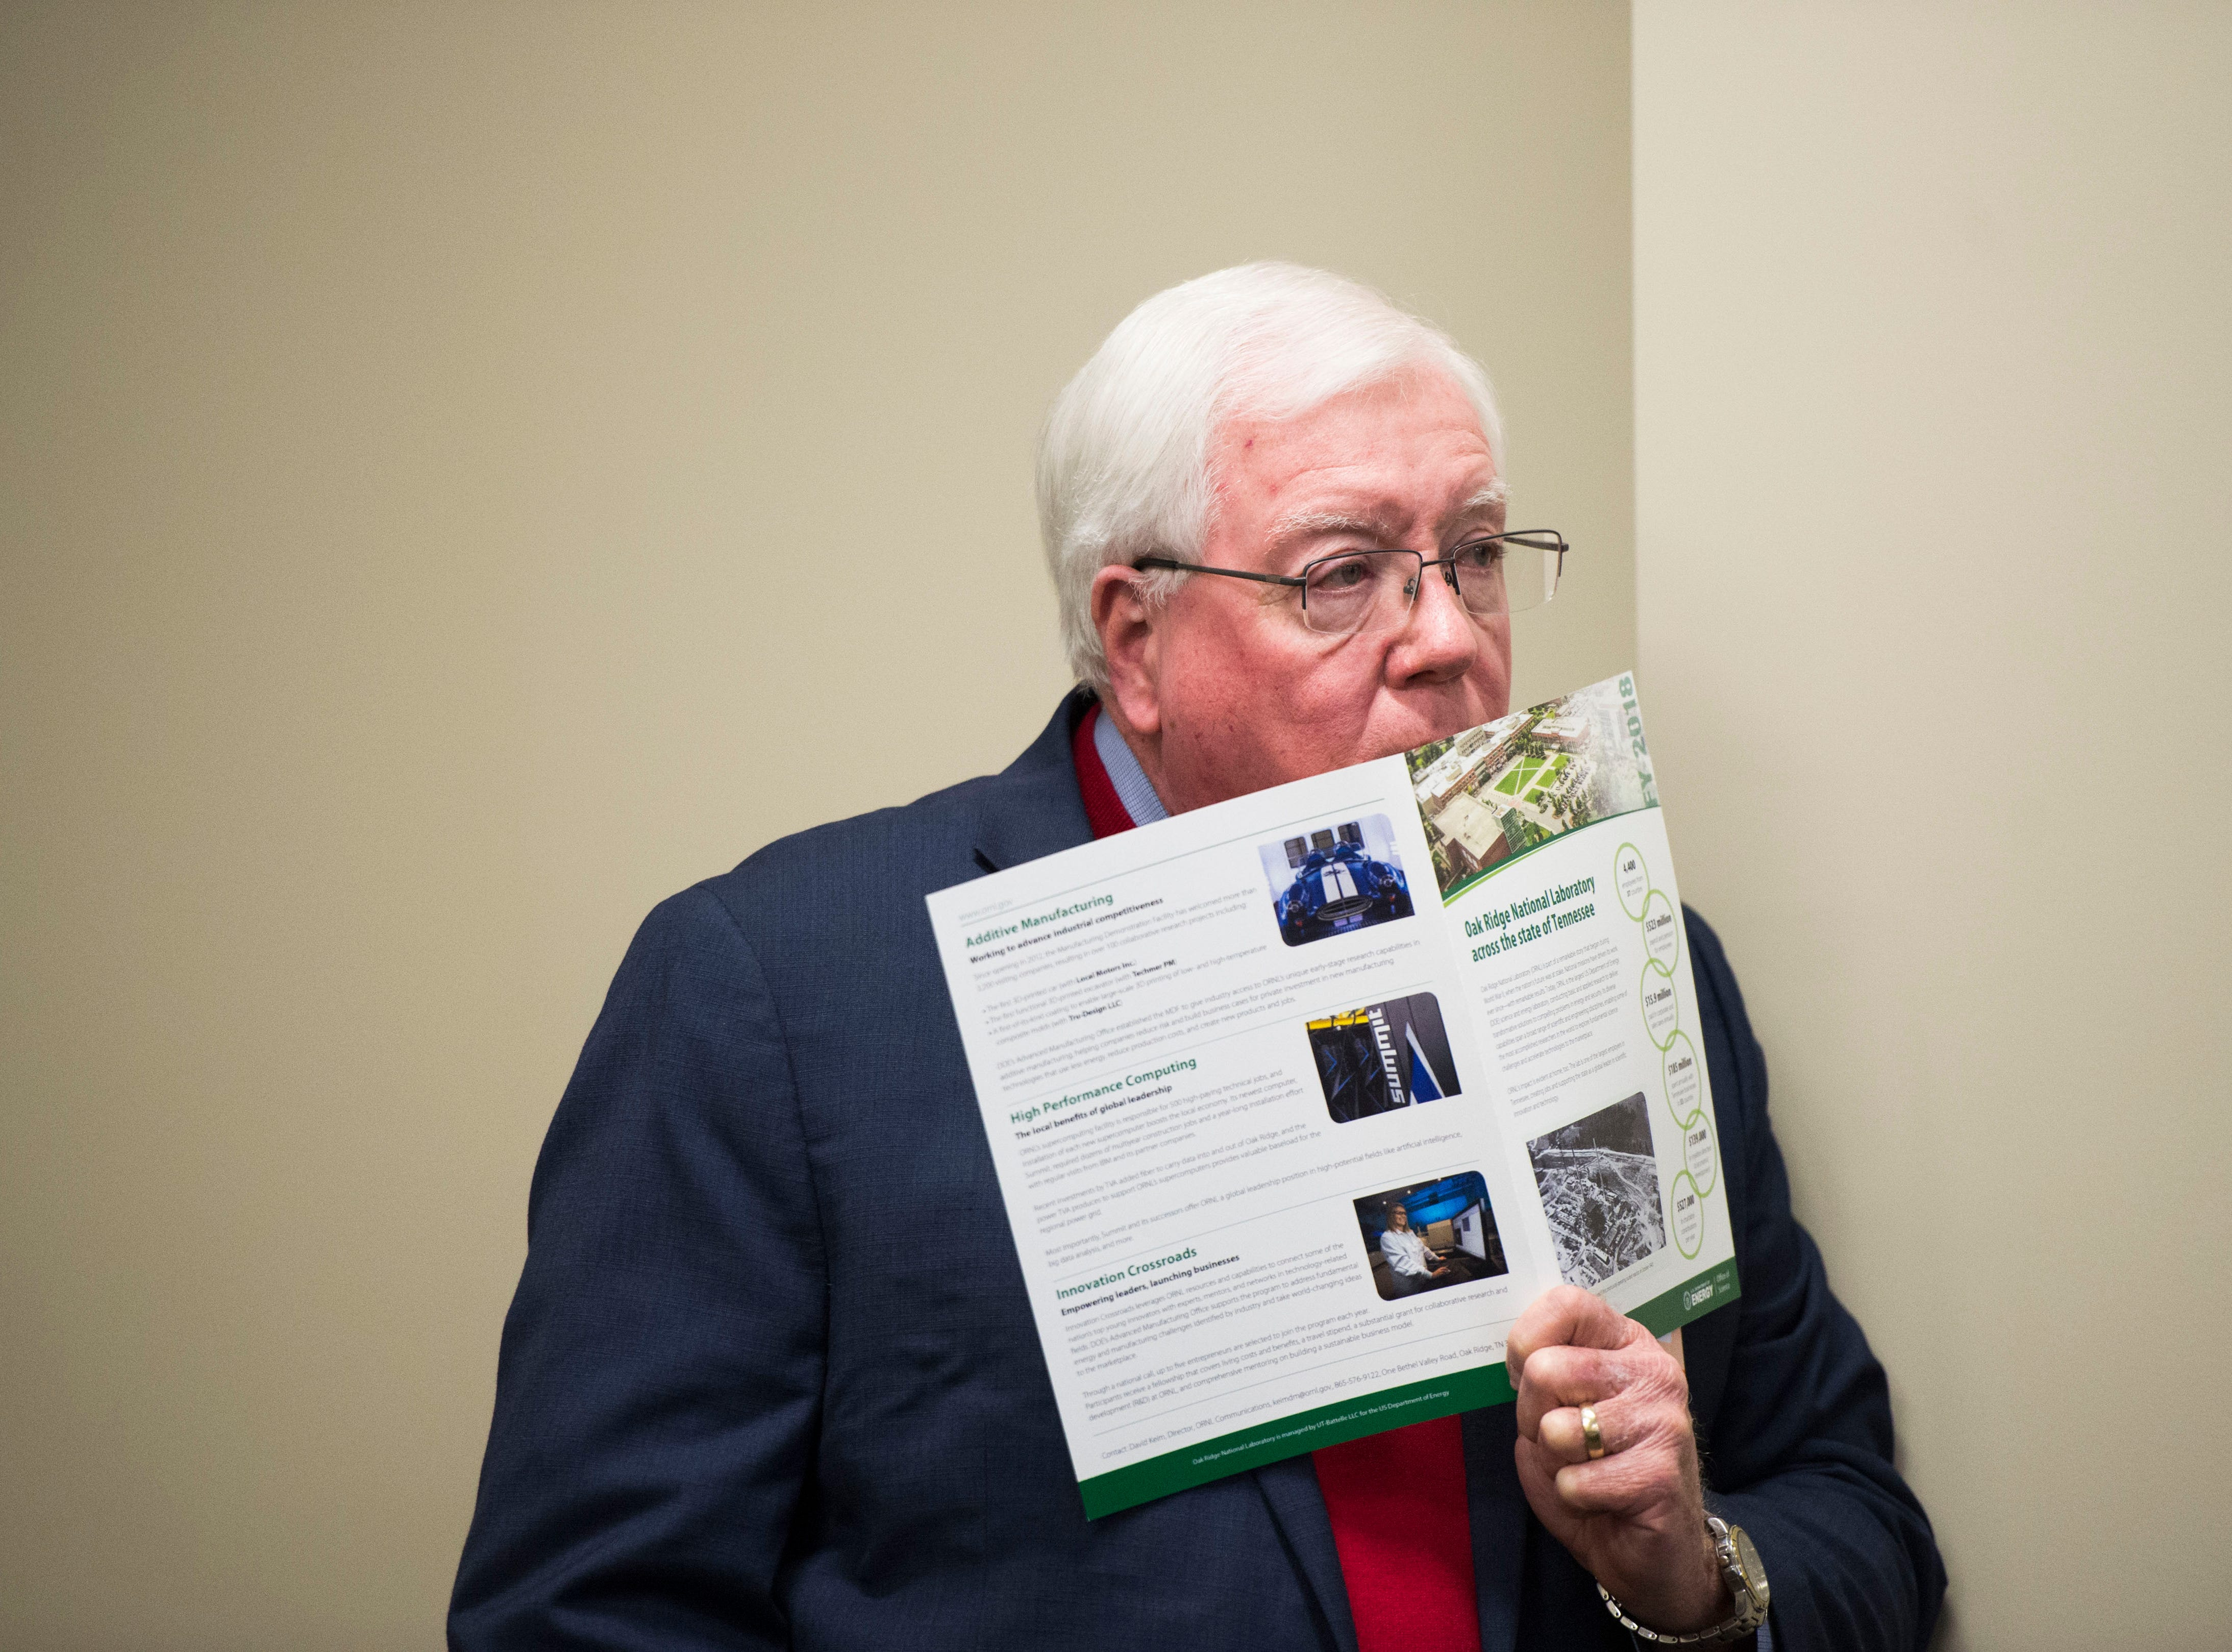 Knox County commissioner Charles Busler listens during a talk at Oak Ridge National Laboratory's Manufacturing Demonstration Facility in Knoxville Tuesday, Dec. 4, 2018. The group of Knox County Commissioners and Knoxville Chamber officials got a sense of what is available for the region in terms of advanced manufacturing, and potential workforce initiatives.